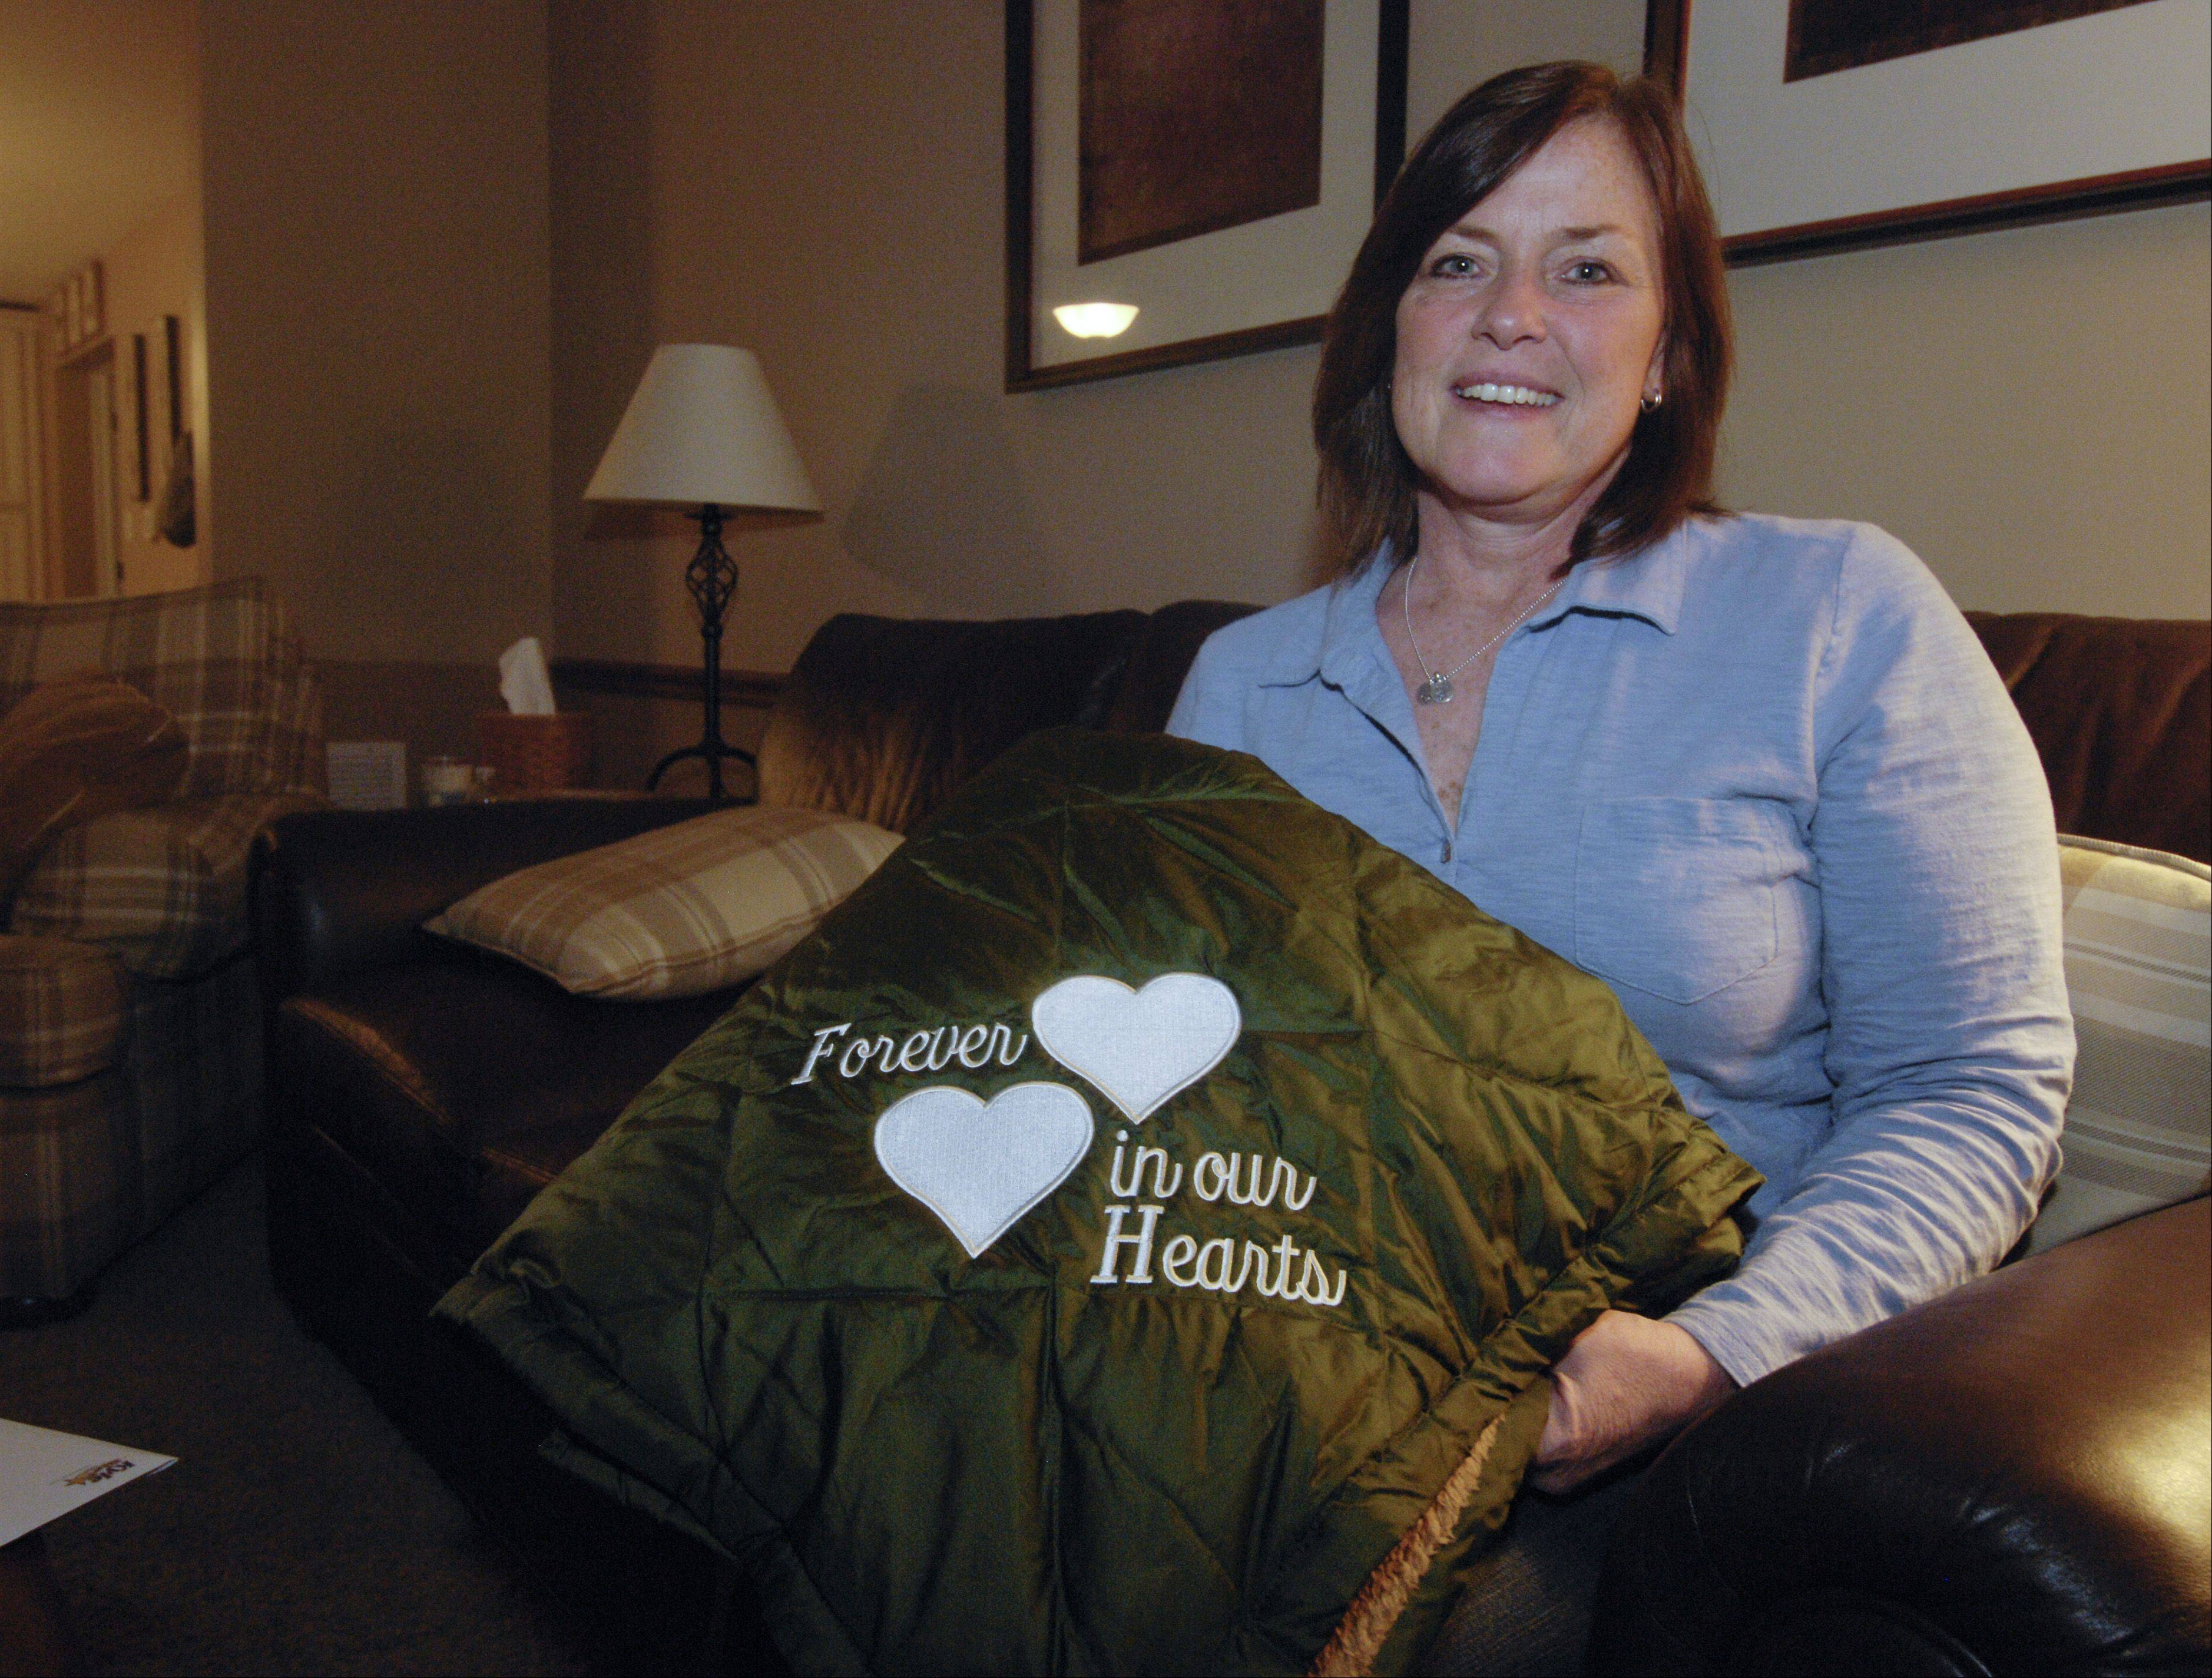 Jill Zuleg of Naperville shows one of the blankets that the Kyle Zuleg Foundation gives to families going through the process of donating the organs of a loved one. Inspired by her own family�s experience after the death of their teenage son Kyle, the blankets read �Forever in our Hearts.�